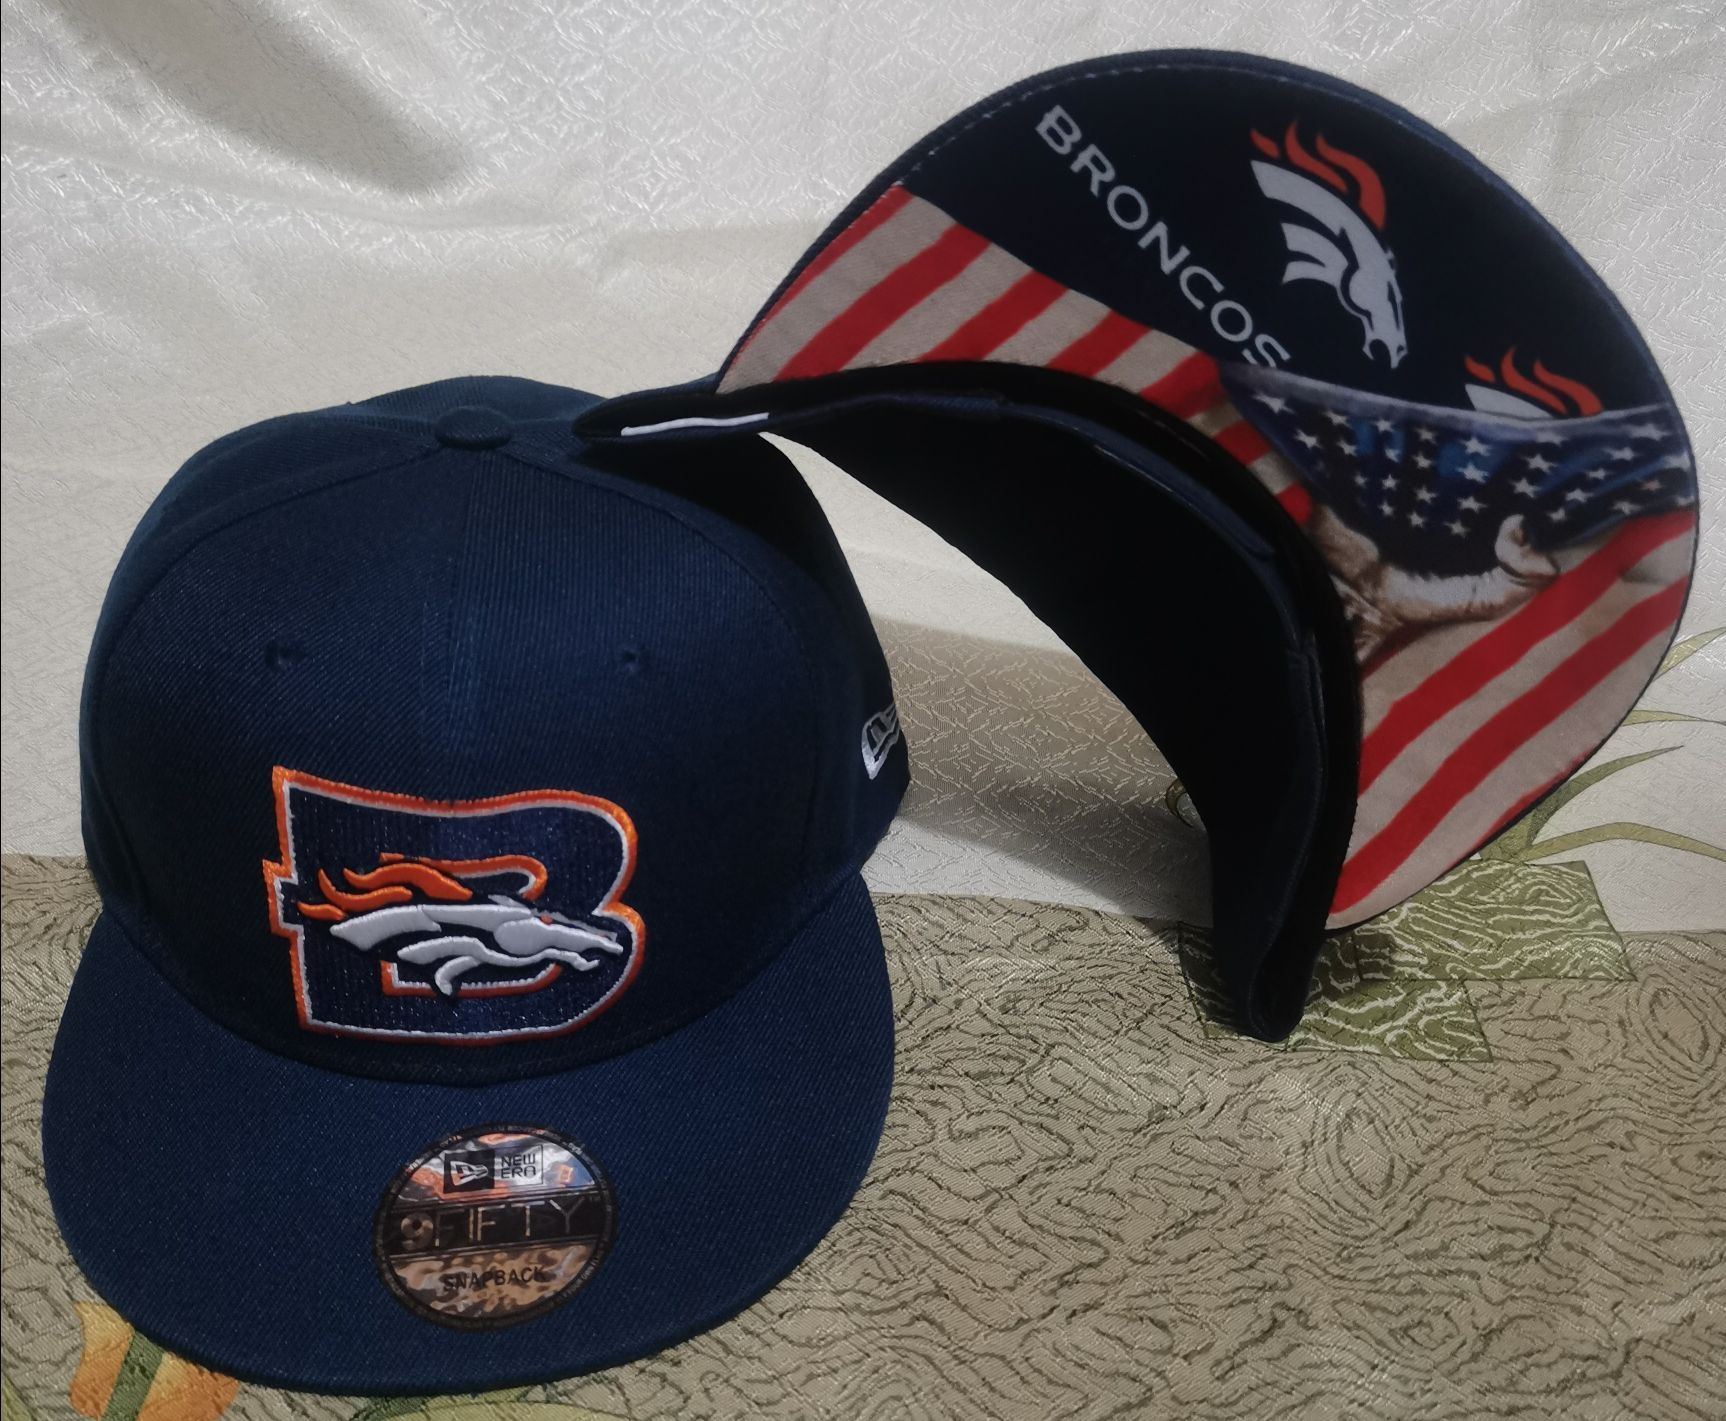 Wholesale 2021 NFL Denver Broncos 15 hat